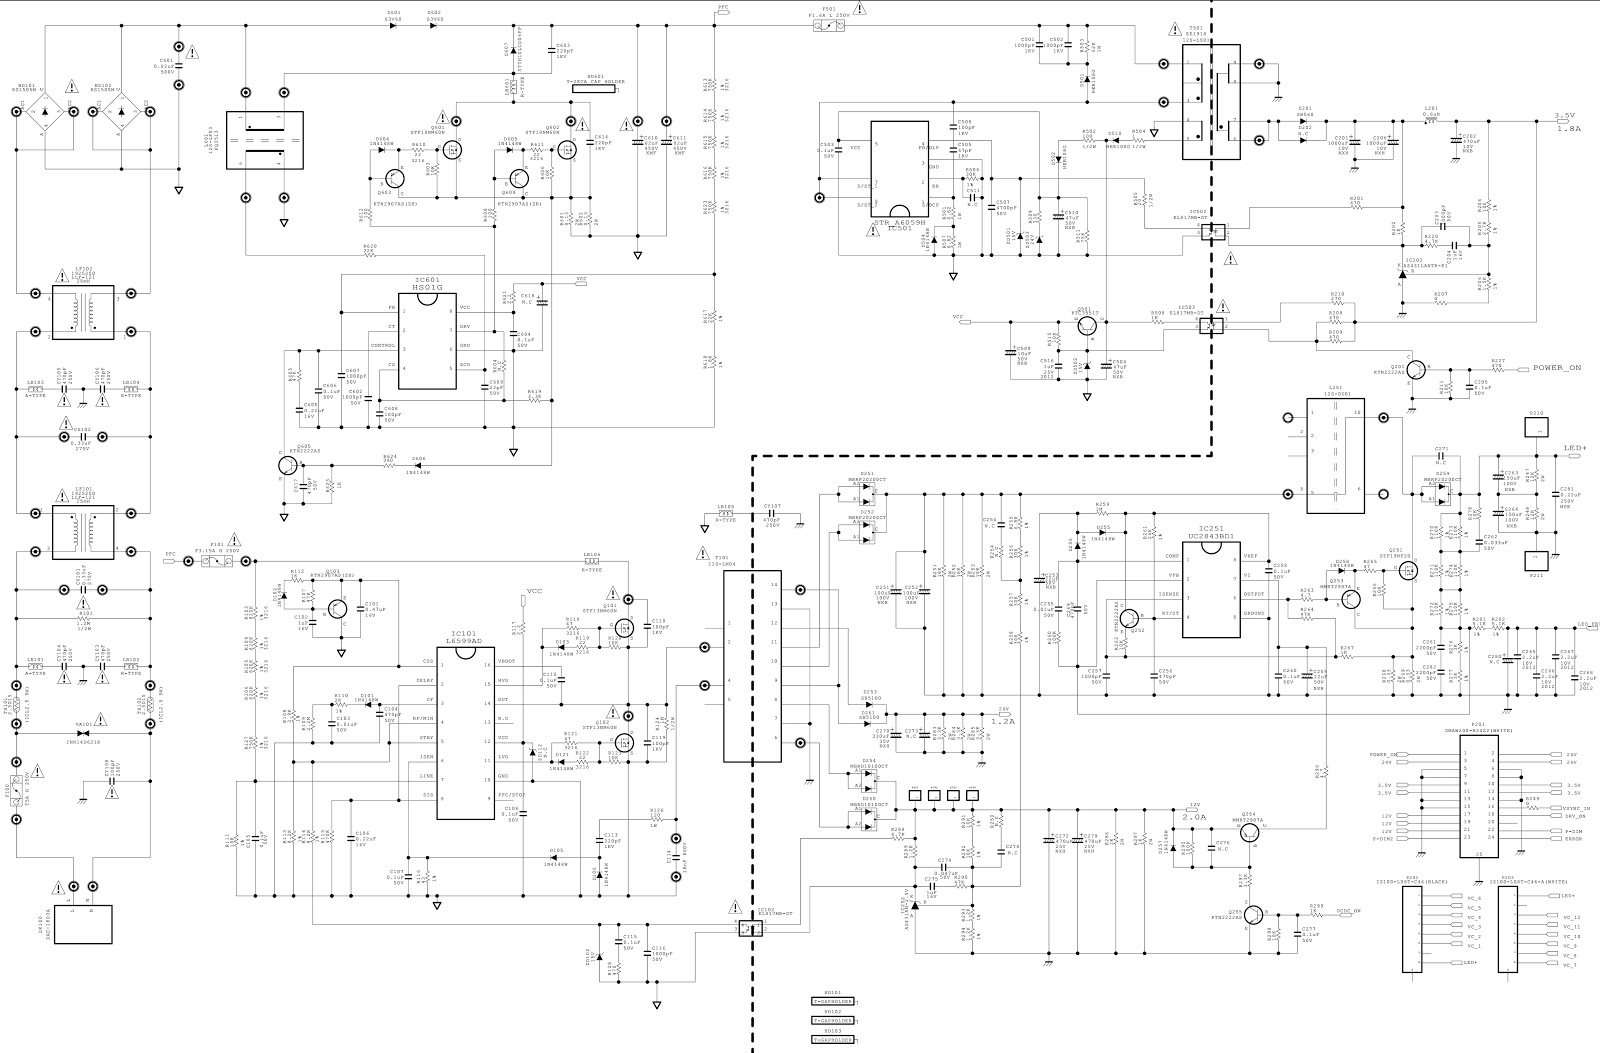 Diagram Of Lg Tv Power Supply Wiring Libraries Smps Circuit Mercruiser Engine Schematics Diagrams Imgvizio Img